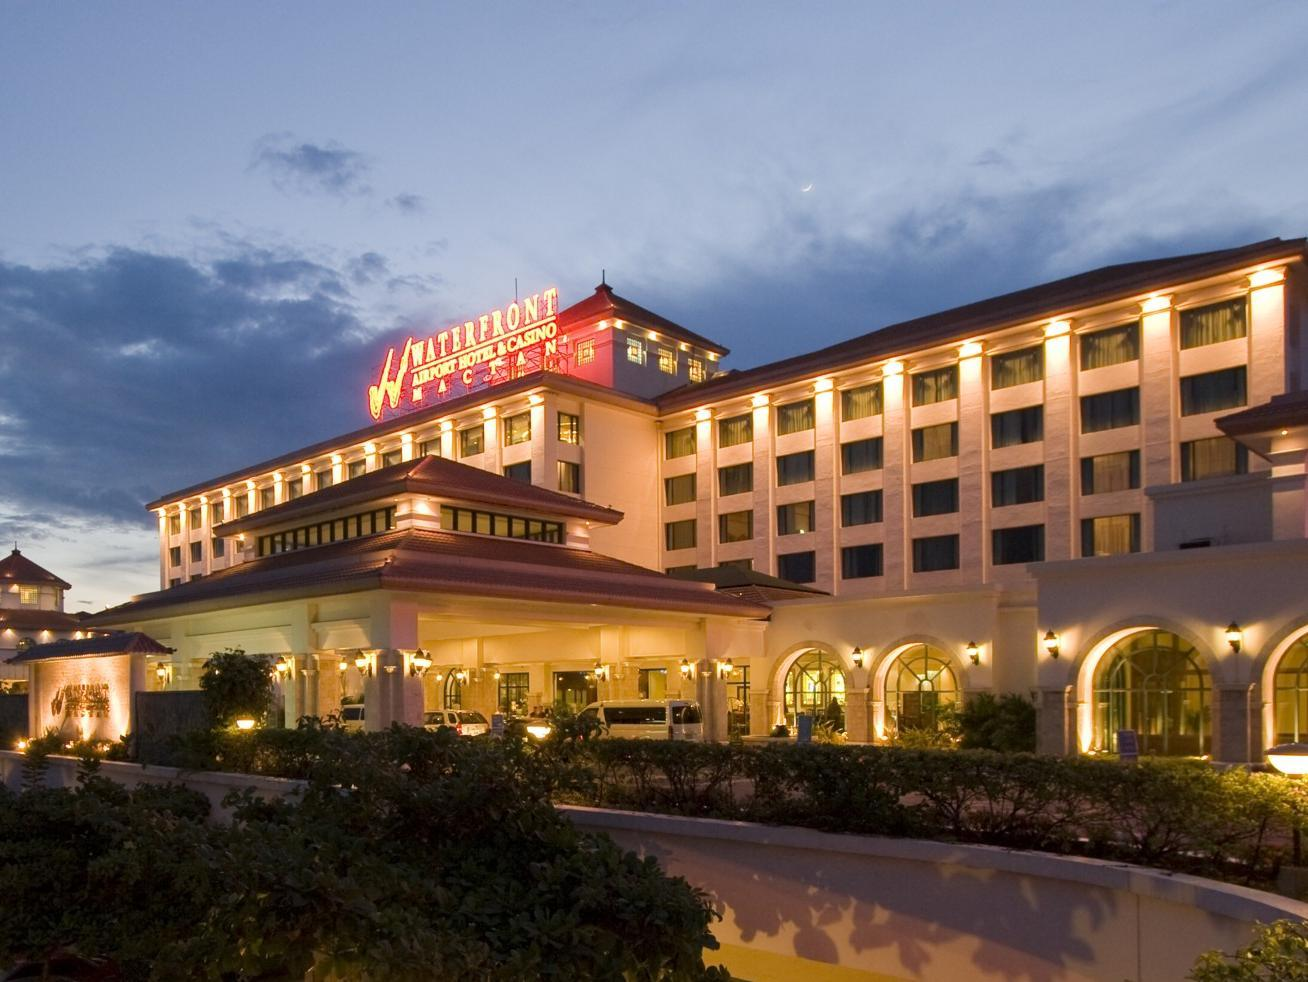 Waterfront Airport Hotel and Casino Cebu